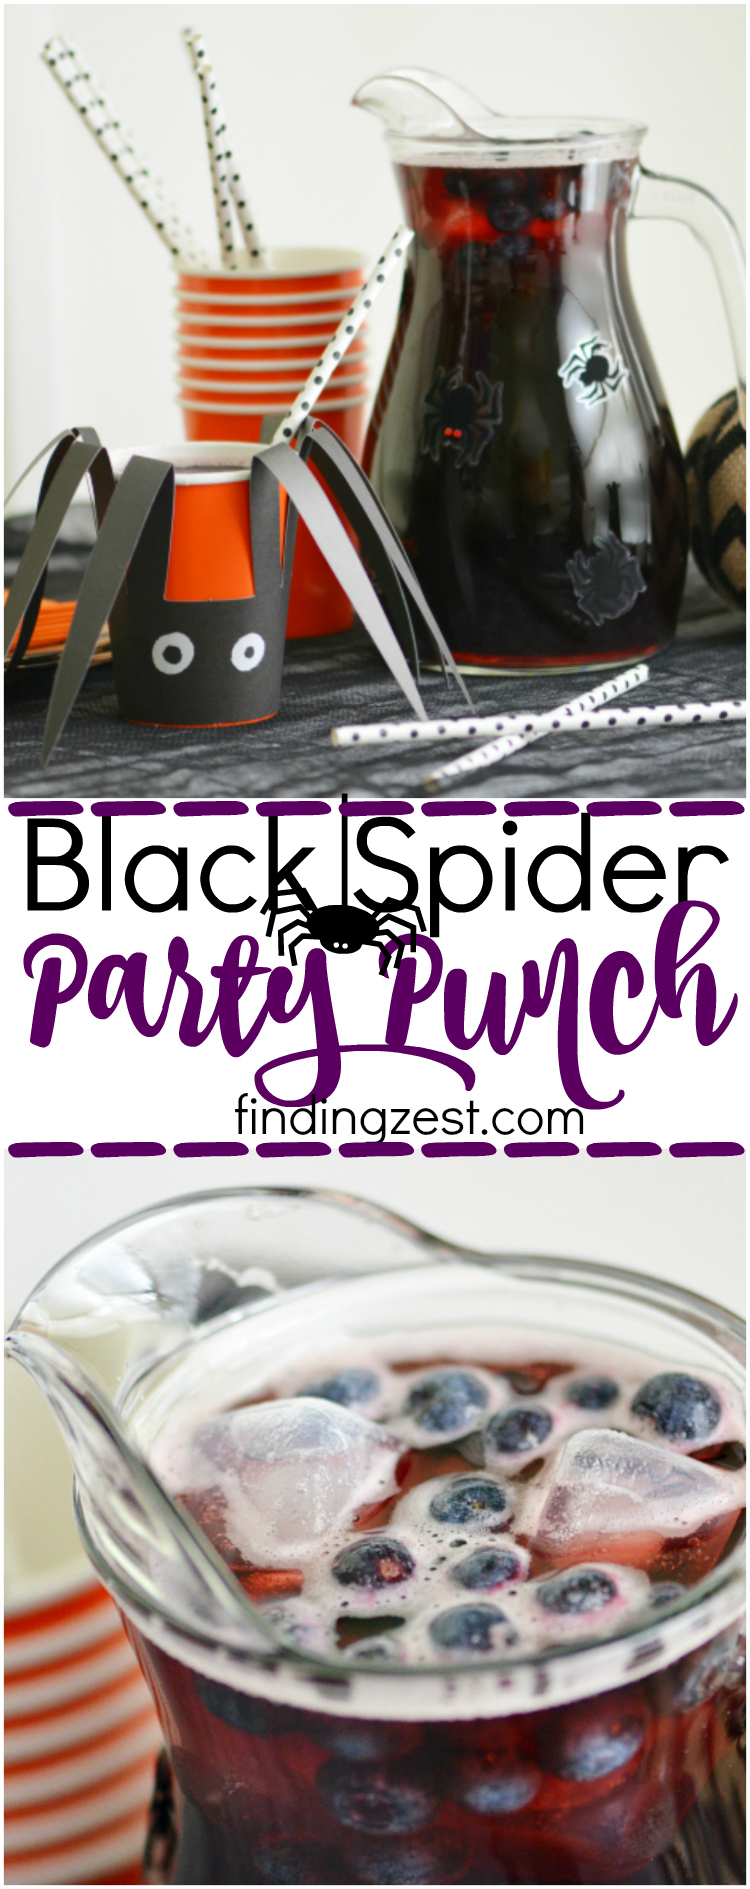 Black Spider Party Punch for Halloween